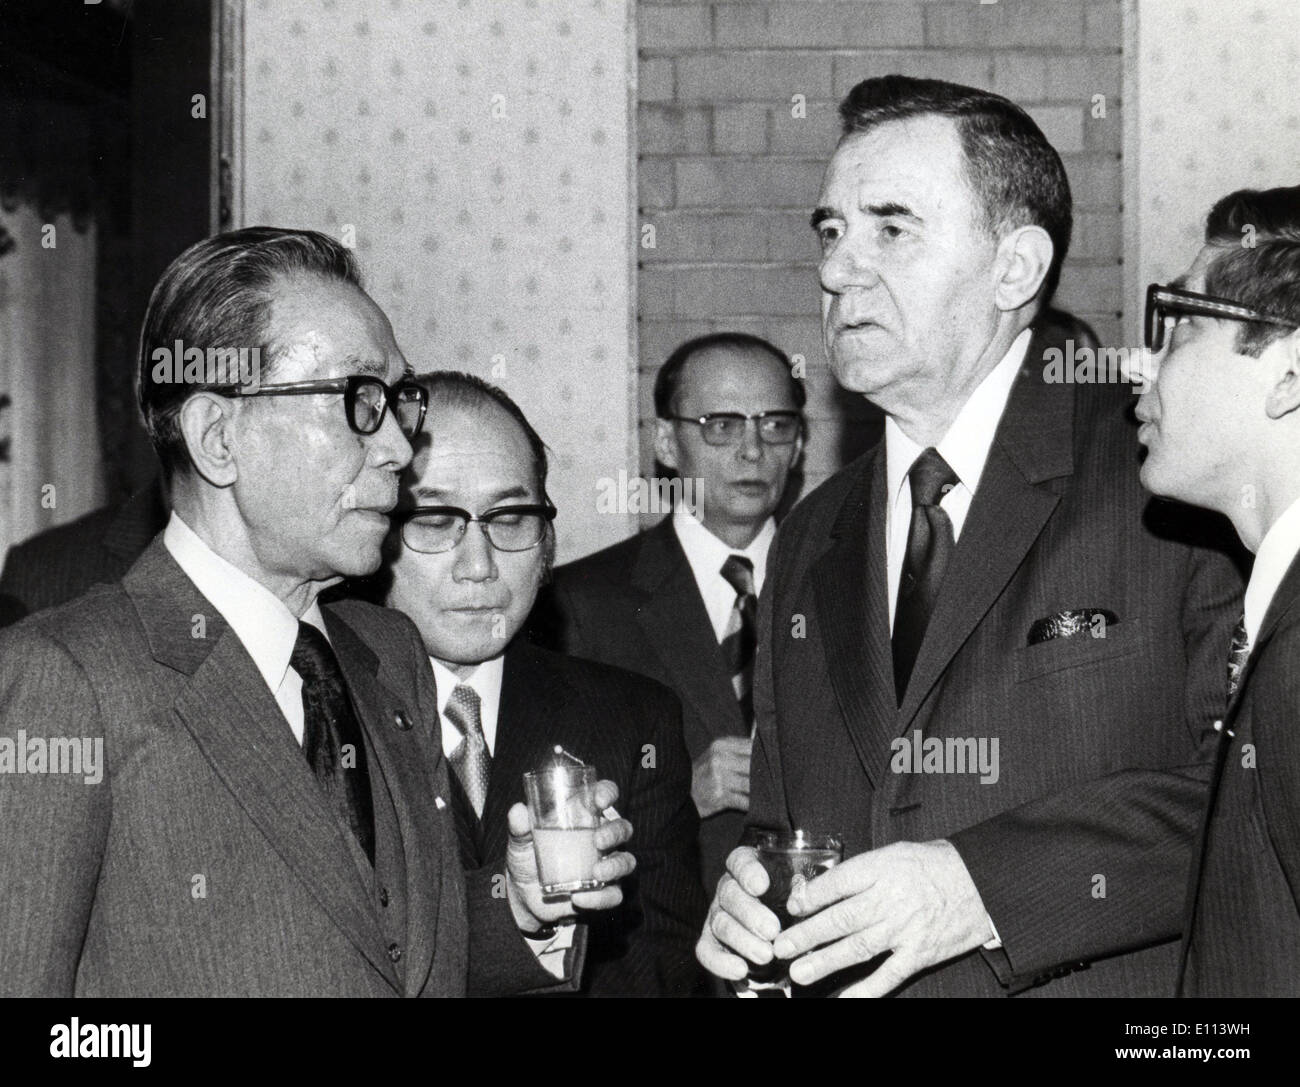 Jul 15, 1975 - Tokyo, Japan - Japanese Prime Minister TAKEO MIKI L at a reception given to visiting Soviet Foreign Minister AN - Stock Image